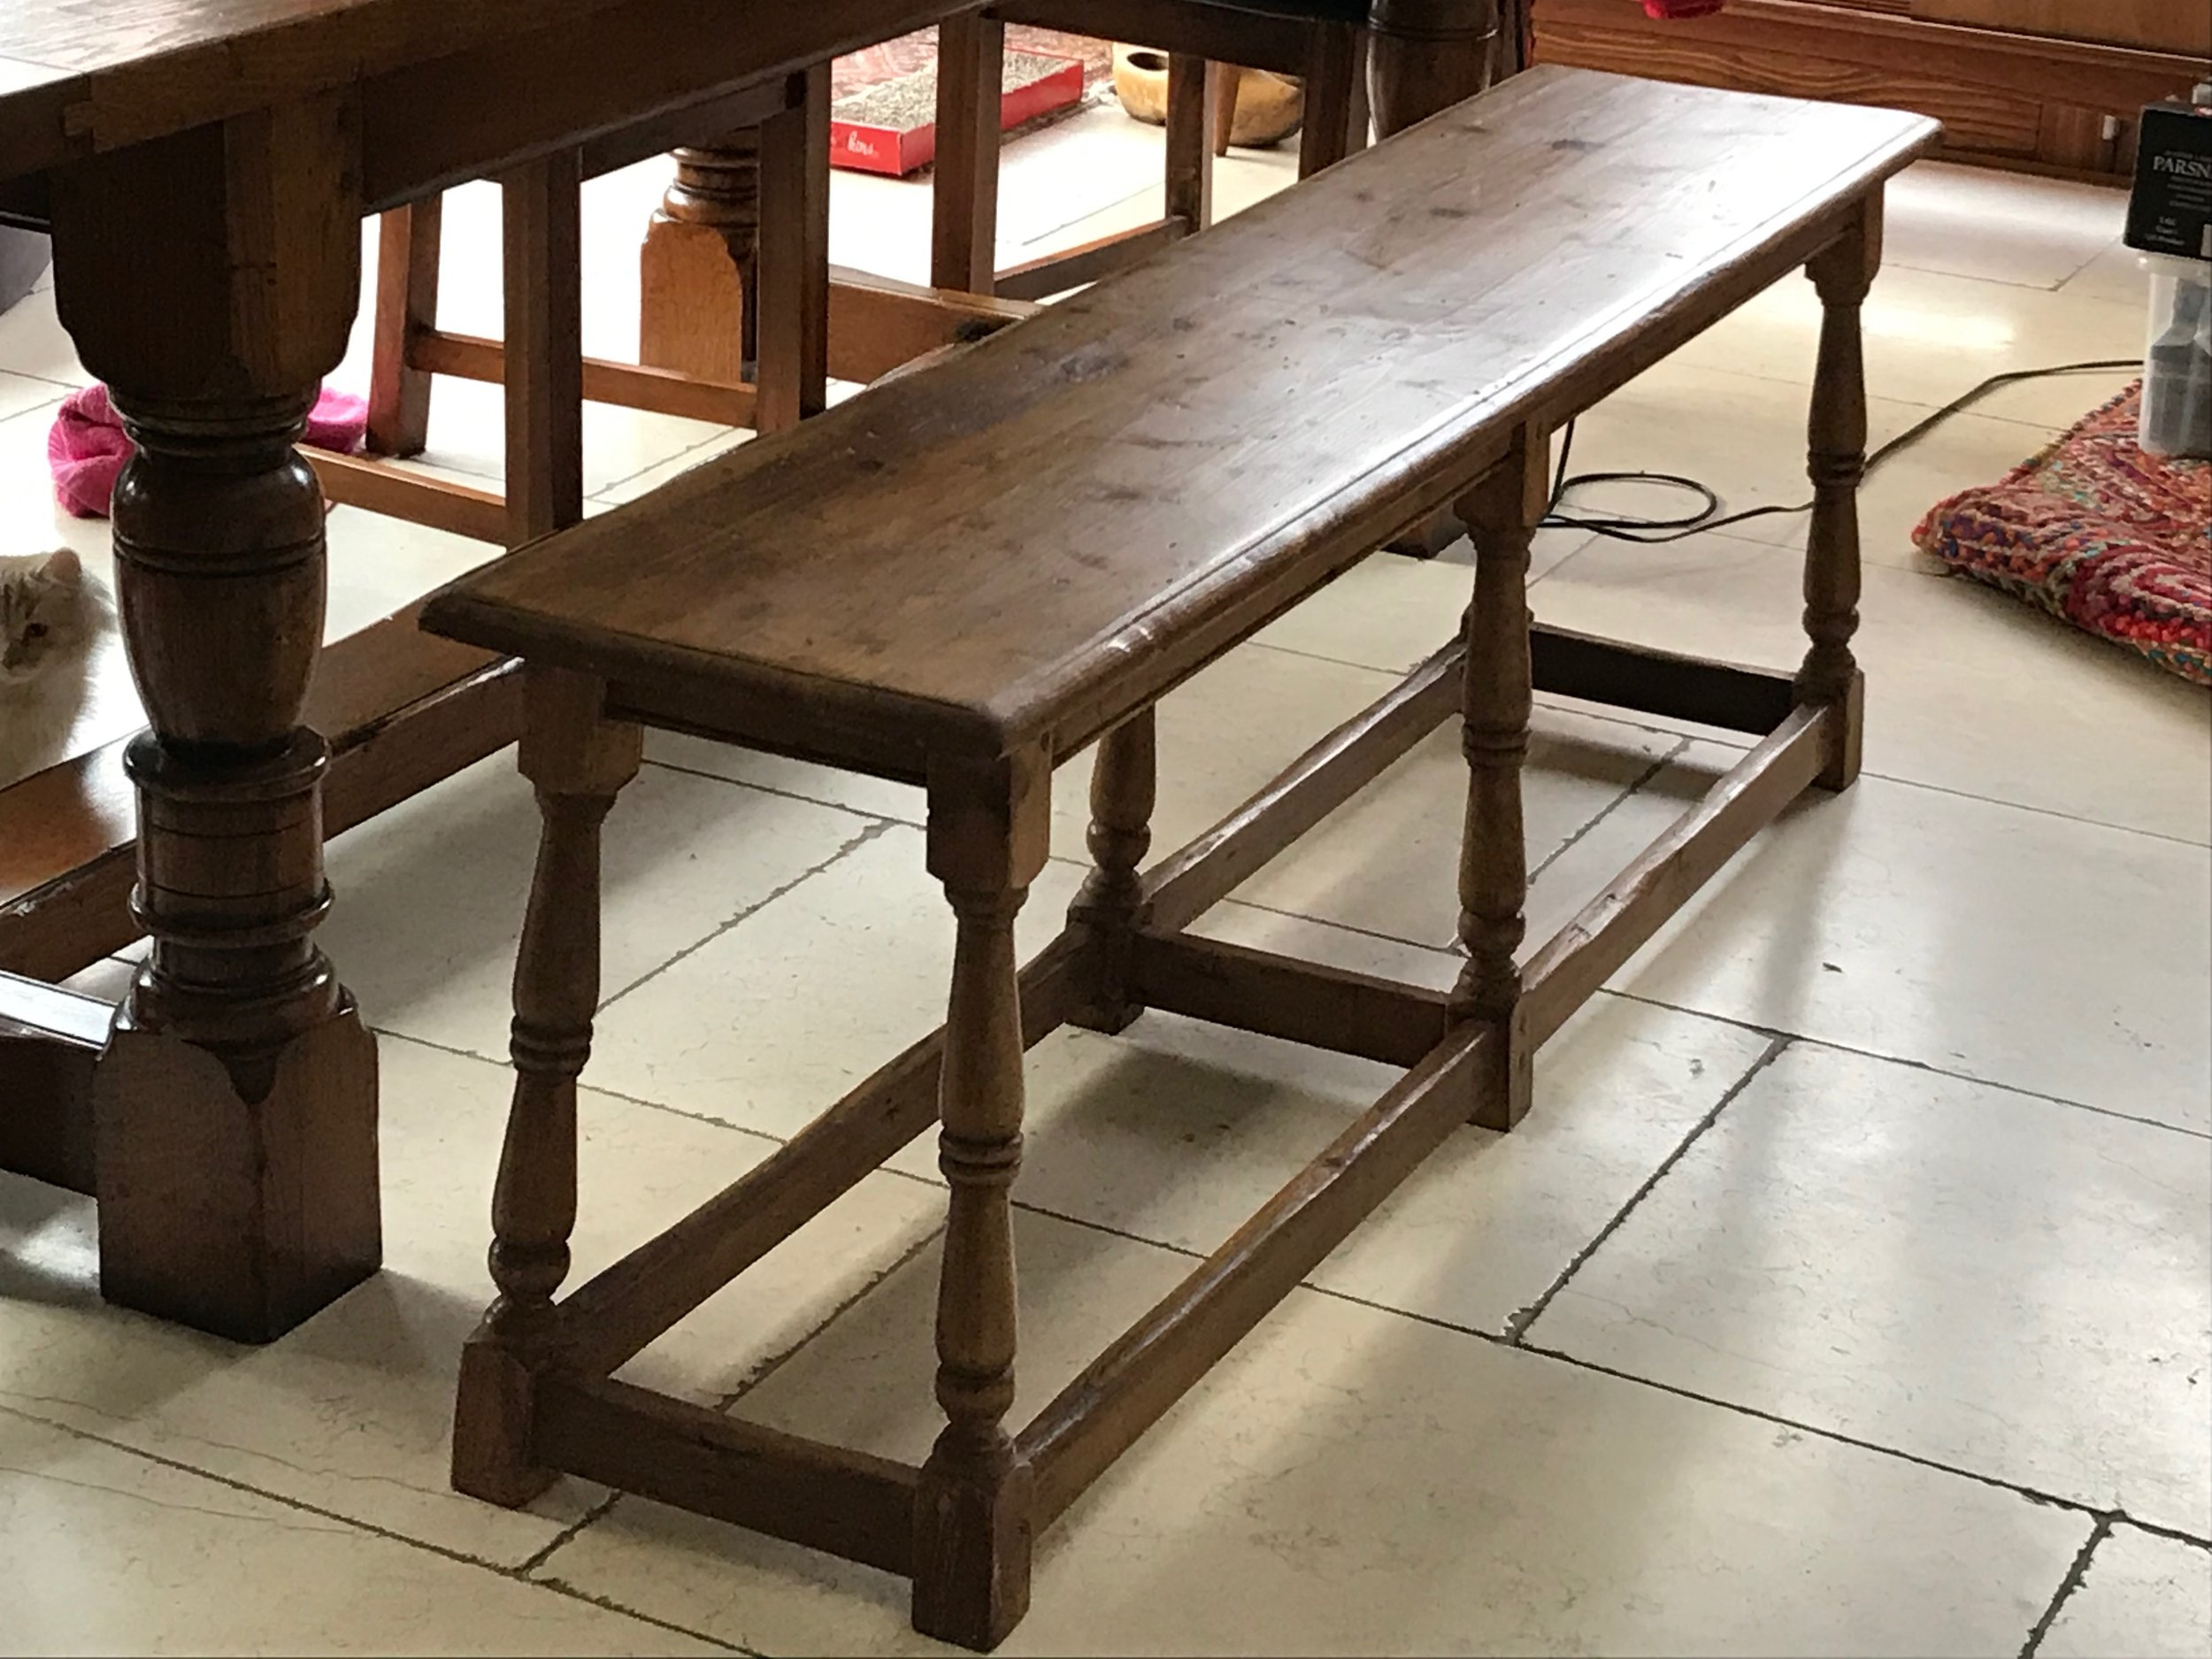 Bench made from old pine floorboards, with 6 legs